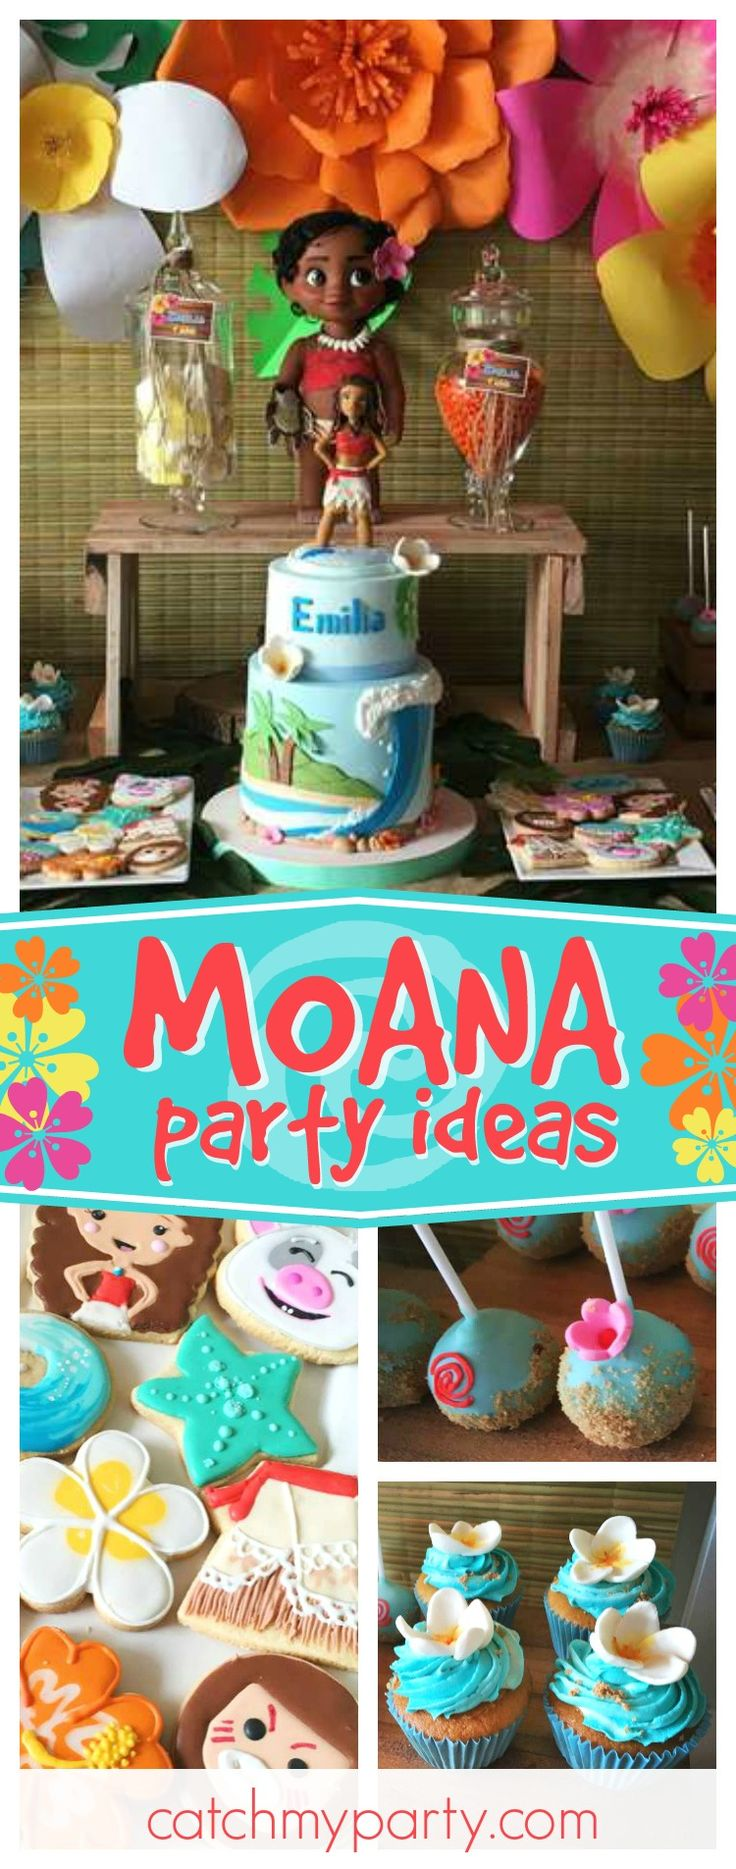 Decoration Stuff For Party 17 Best Ideas About Birthday Parties On Pinterest Birthday Party